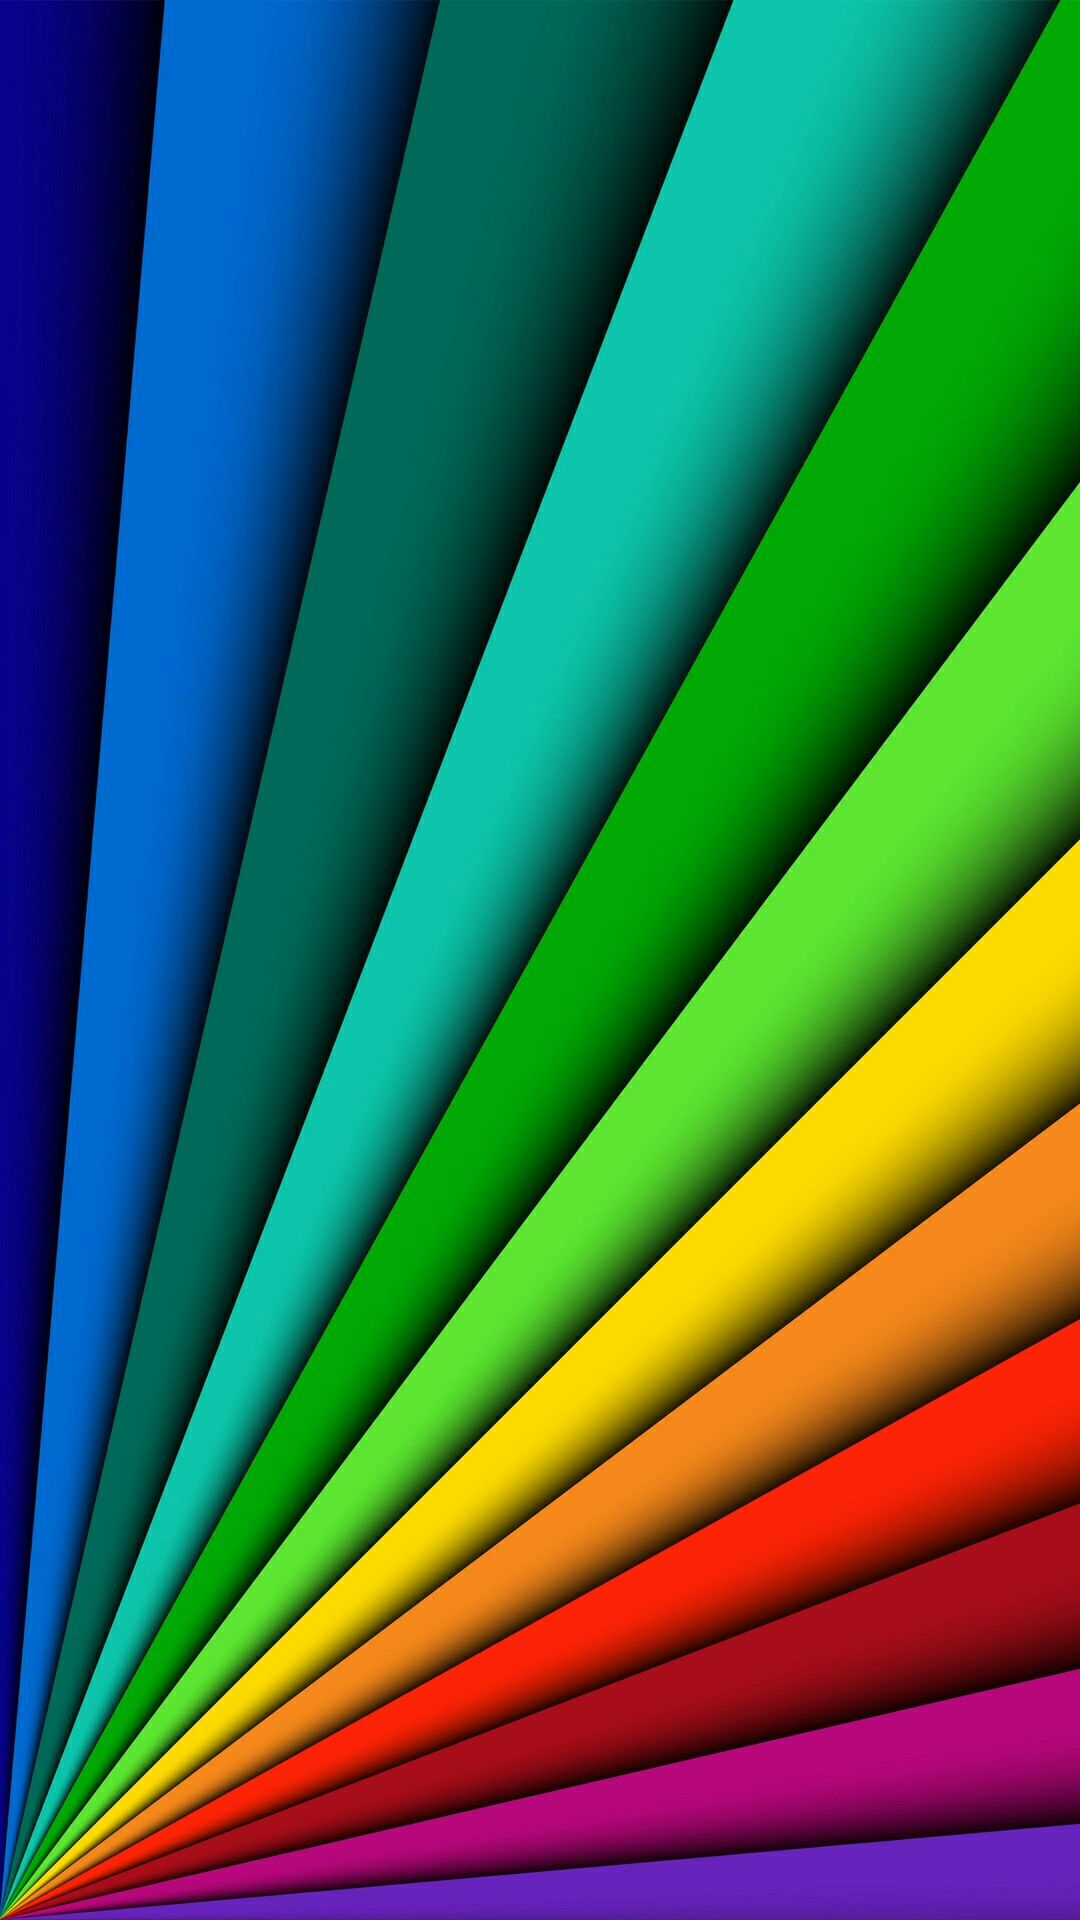 HD 720x1280 colorful abstract lg phone wallpapers